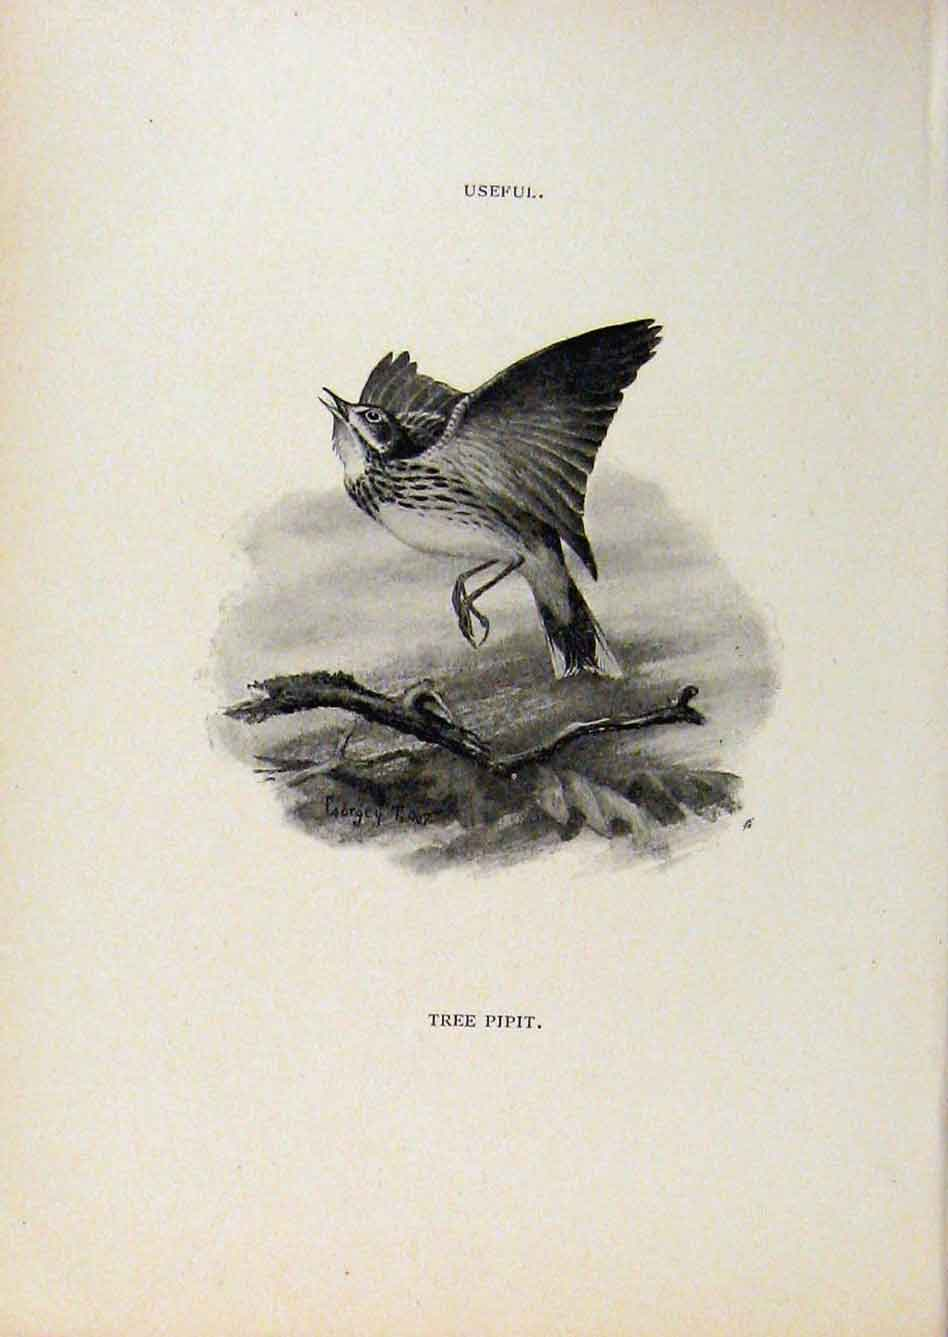 Print Birds Useful And Harmful Tree Pi[Pit By Csorgey C1909 498291 Old Original